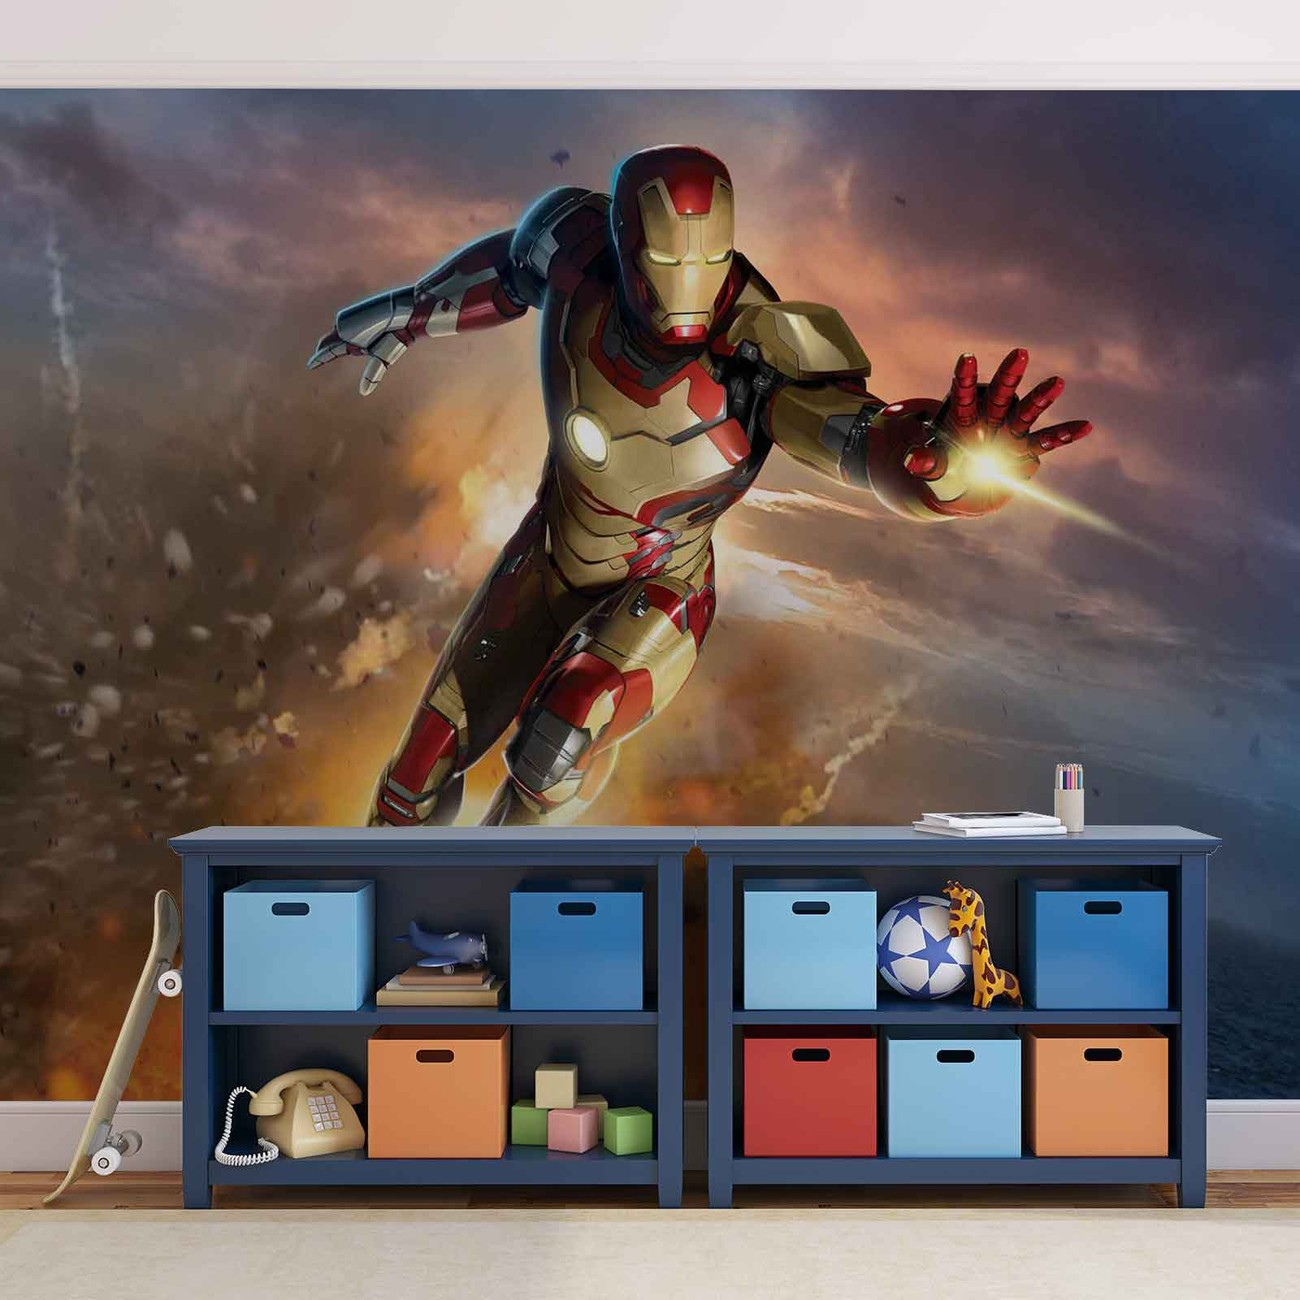 Iron man marvel avengers wall paper mural buy at europosters for Avengers wall mural uk